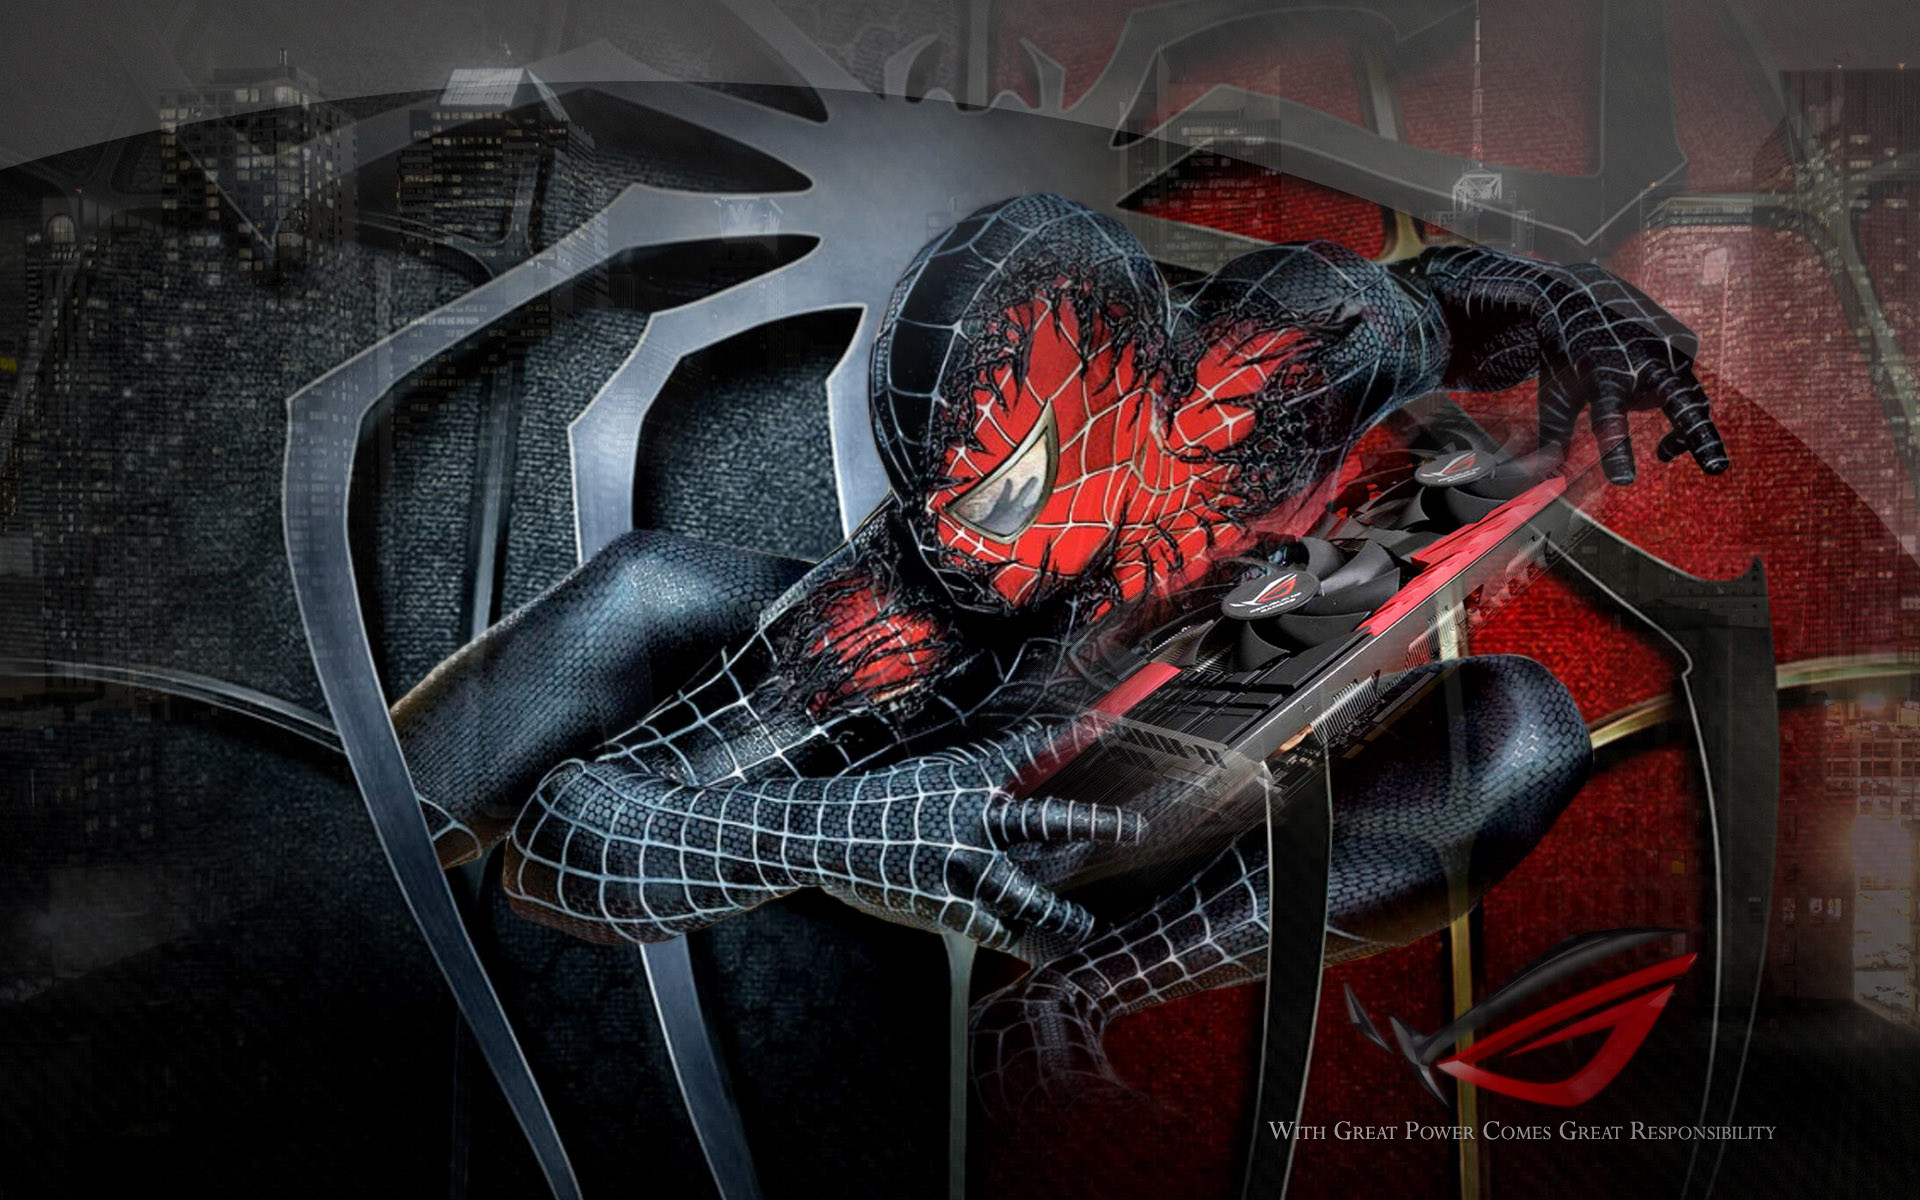 Spiderman Wallpaper Full HD Wallpaper Tattoos and other style   HD  Wallpapers   Pinterest   Spiderman pictures, Man wallpaper and Hd wallpaper